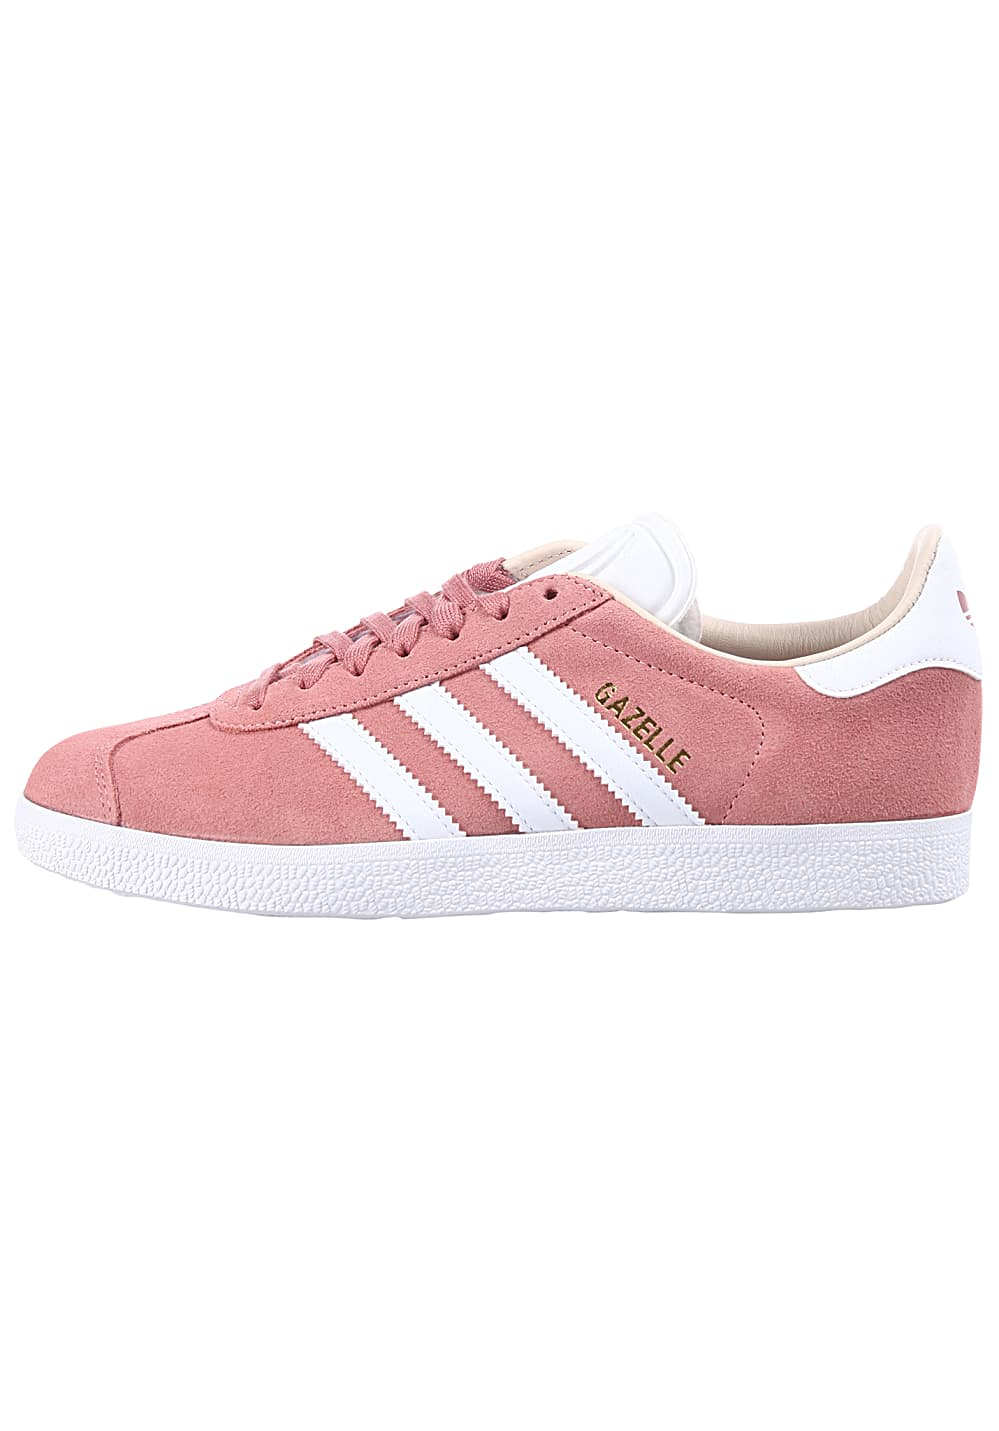 Originals Gazelle Sports Pink Sneaker Planet Adidas Für Damen clKTF1J3